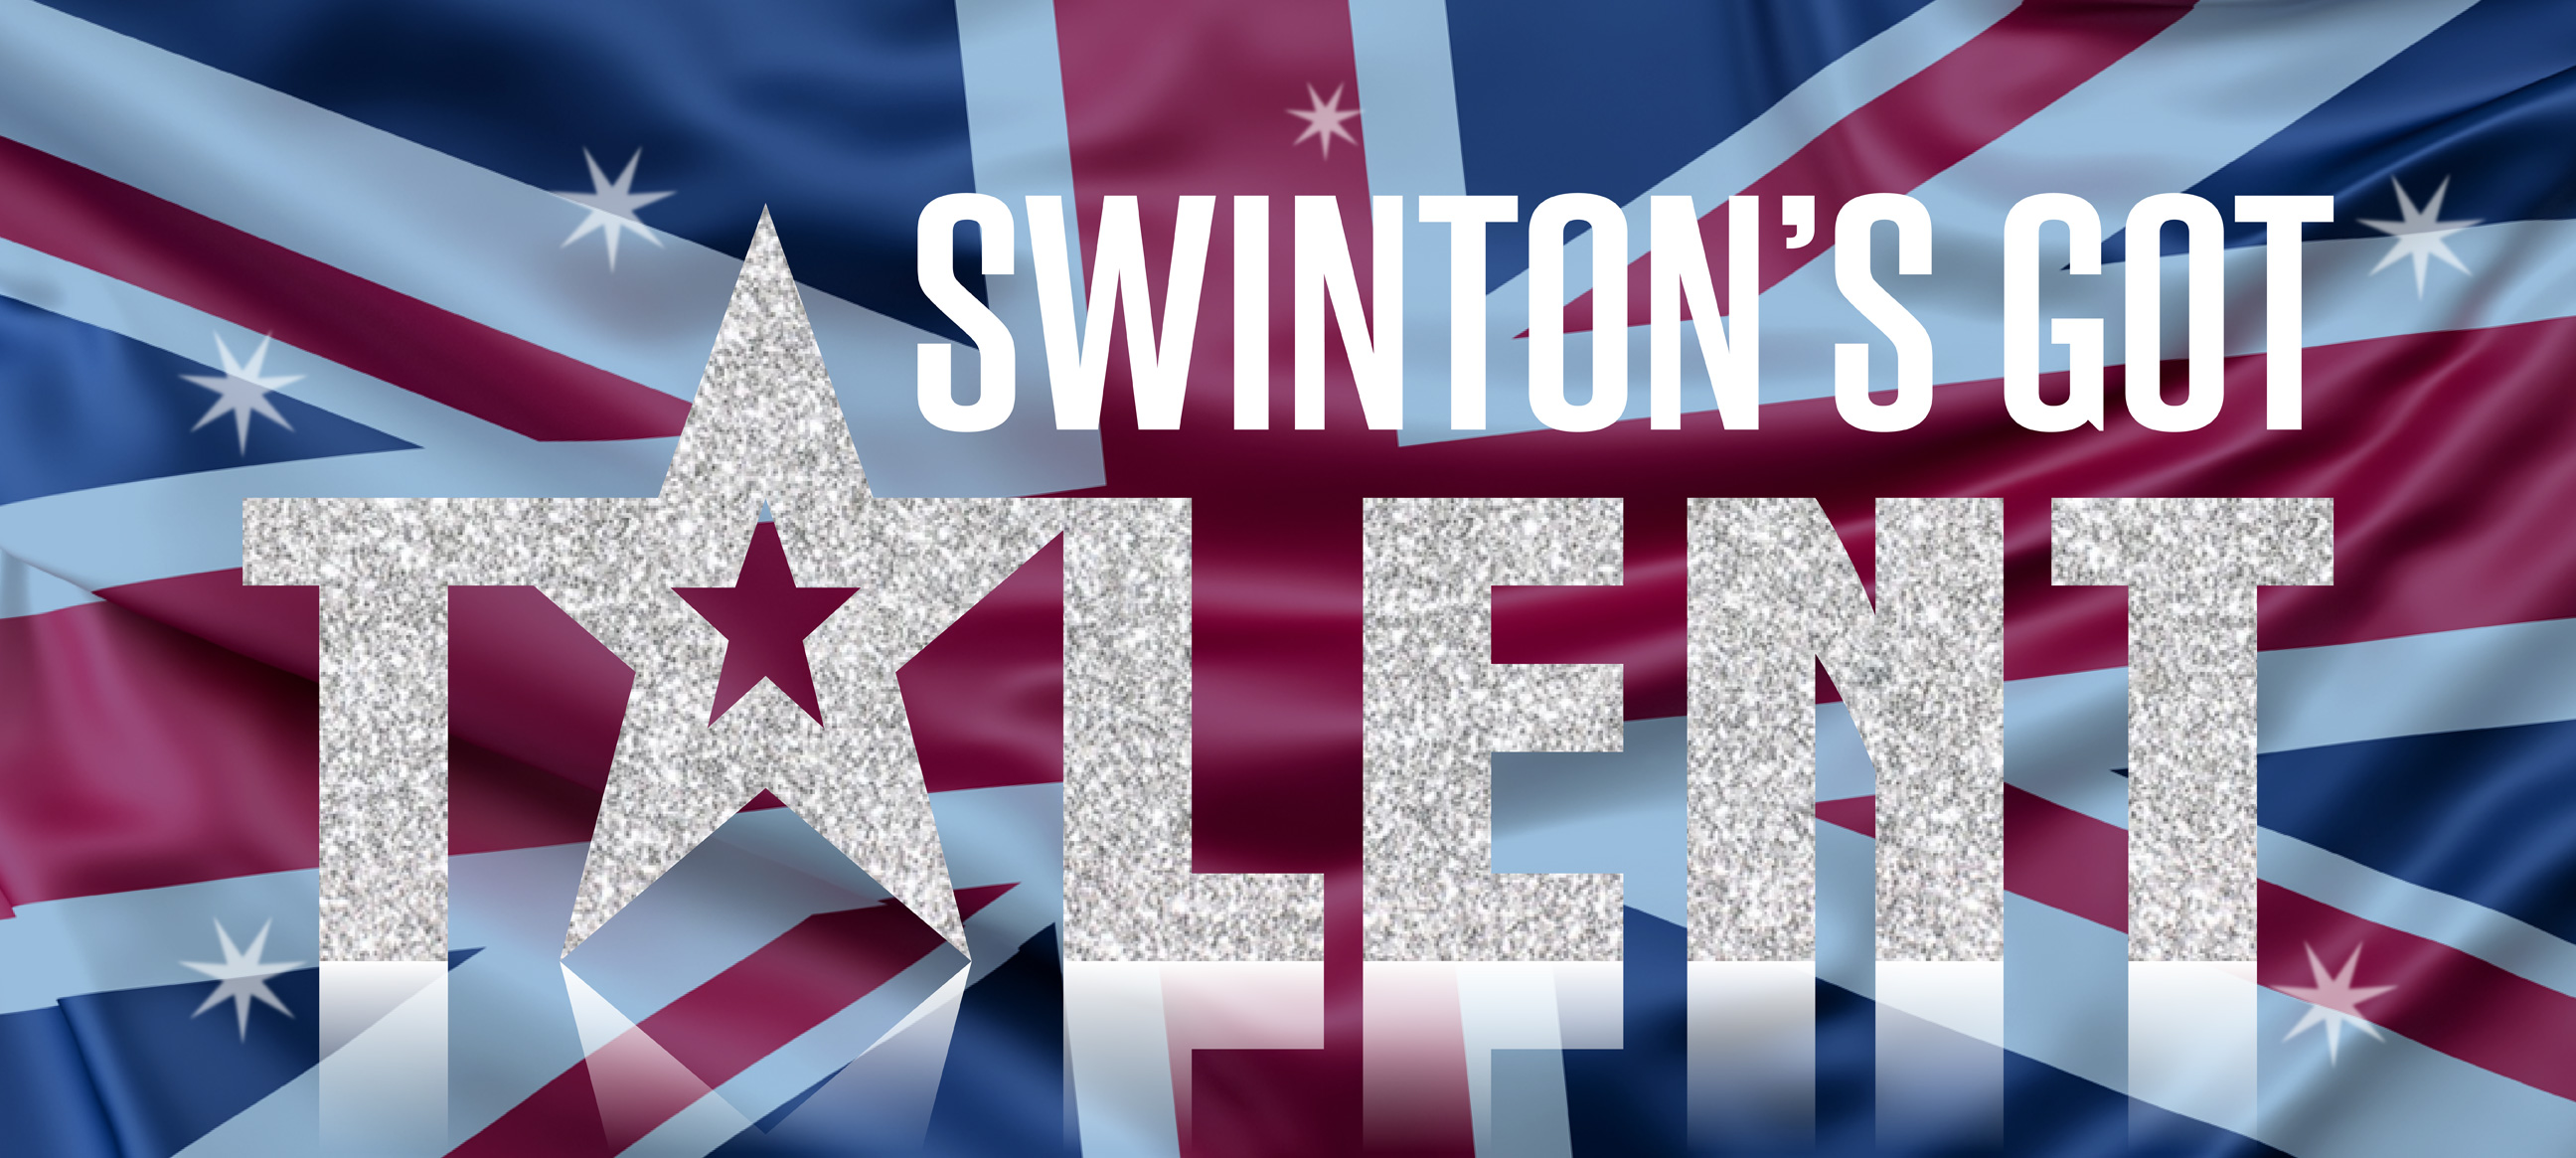 Swinton's Got Talent 2018